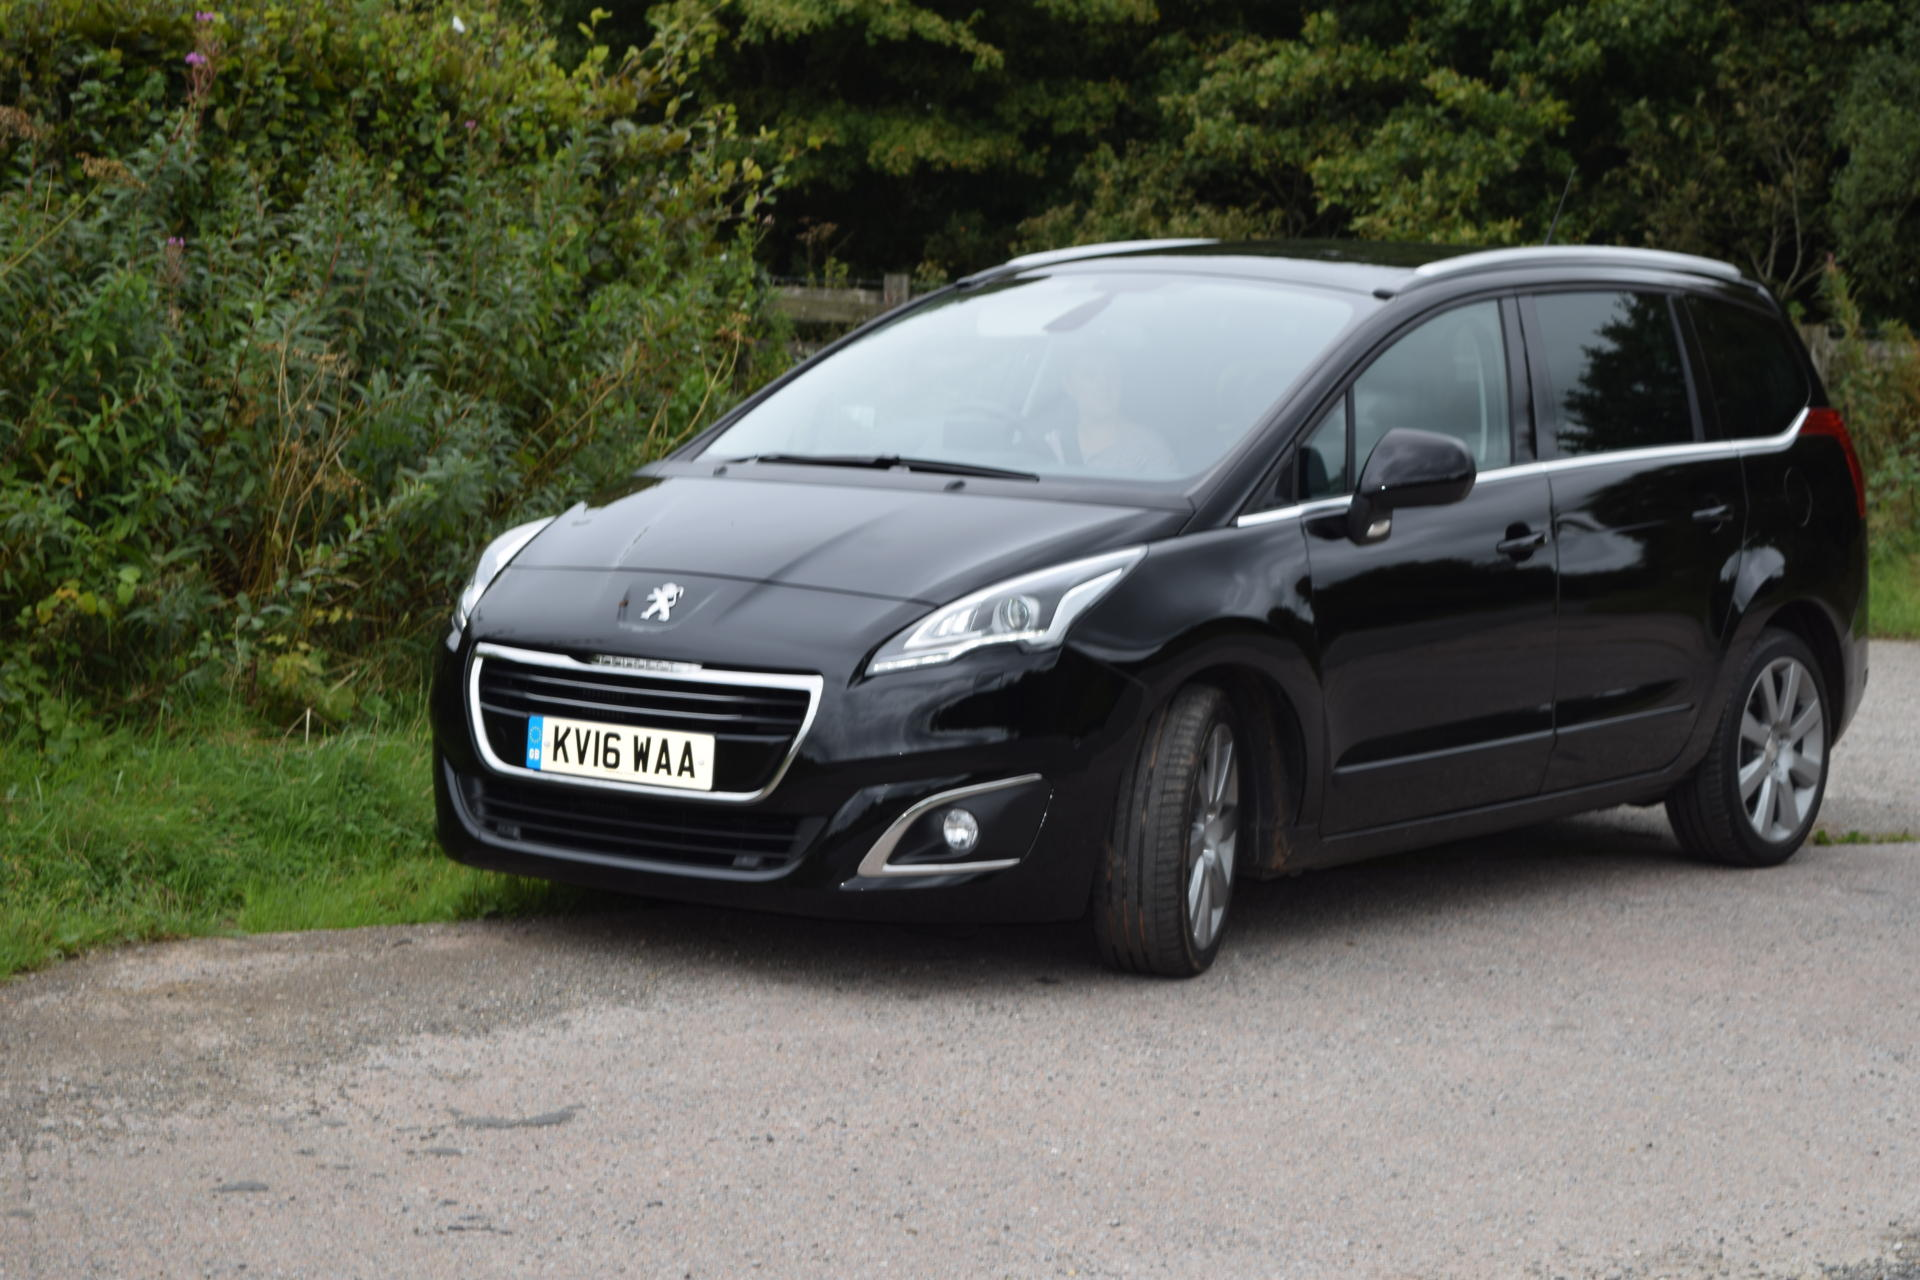 review peugeot 5008 7 seater mpv family fever. Black Bedroom Furniture Sets. Home Design Ideas